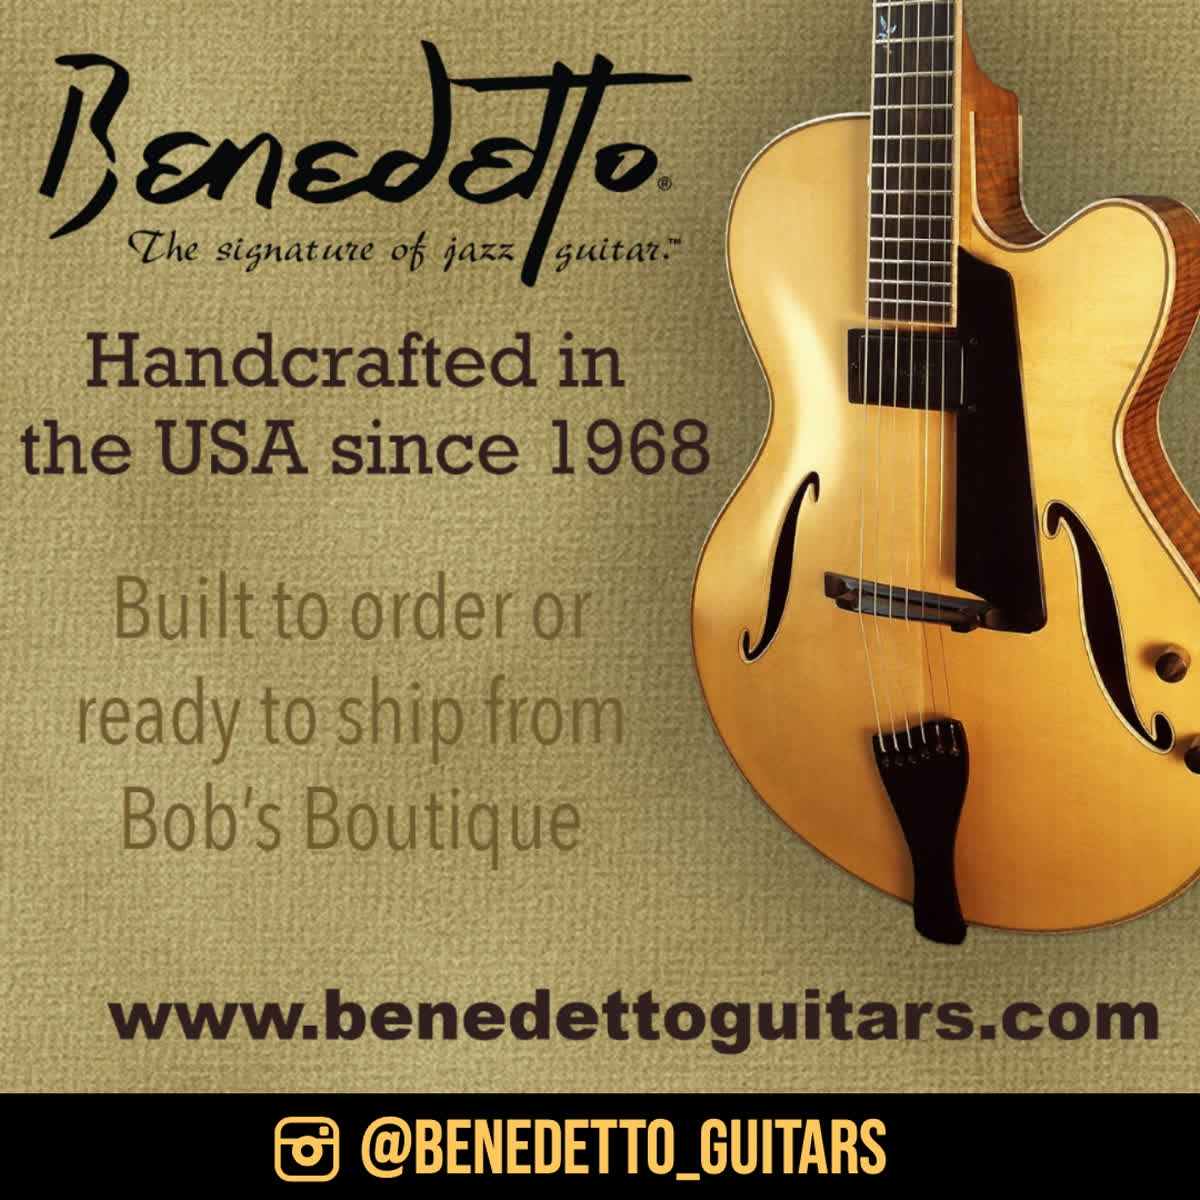 @BenedettoGuitar, American made archtop jazz guitars, played by four generations of jazz masters.  VIEW >>> https://qoo.ly/367w2y   #archtop #archtopguitar #benedetto #benedettoguitars #jazzguitartoday #jazzguitar #jazz #guitarpic.twitter.com/XRzzuDsvXr